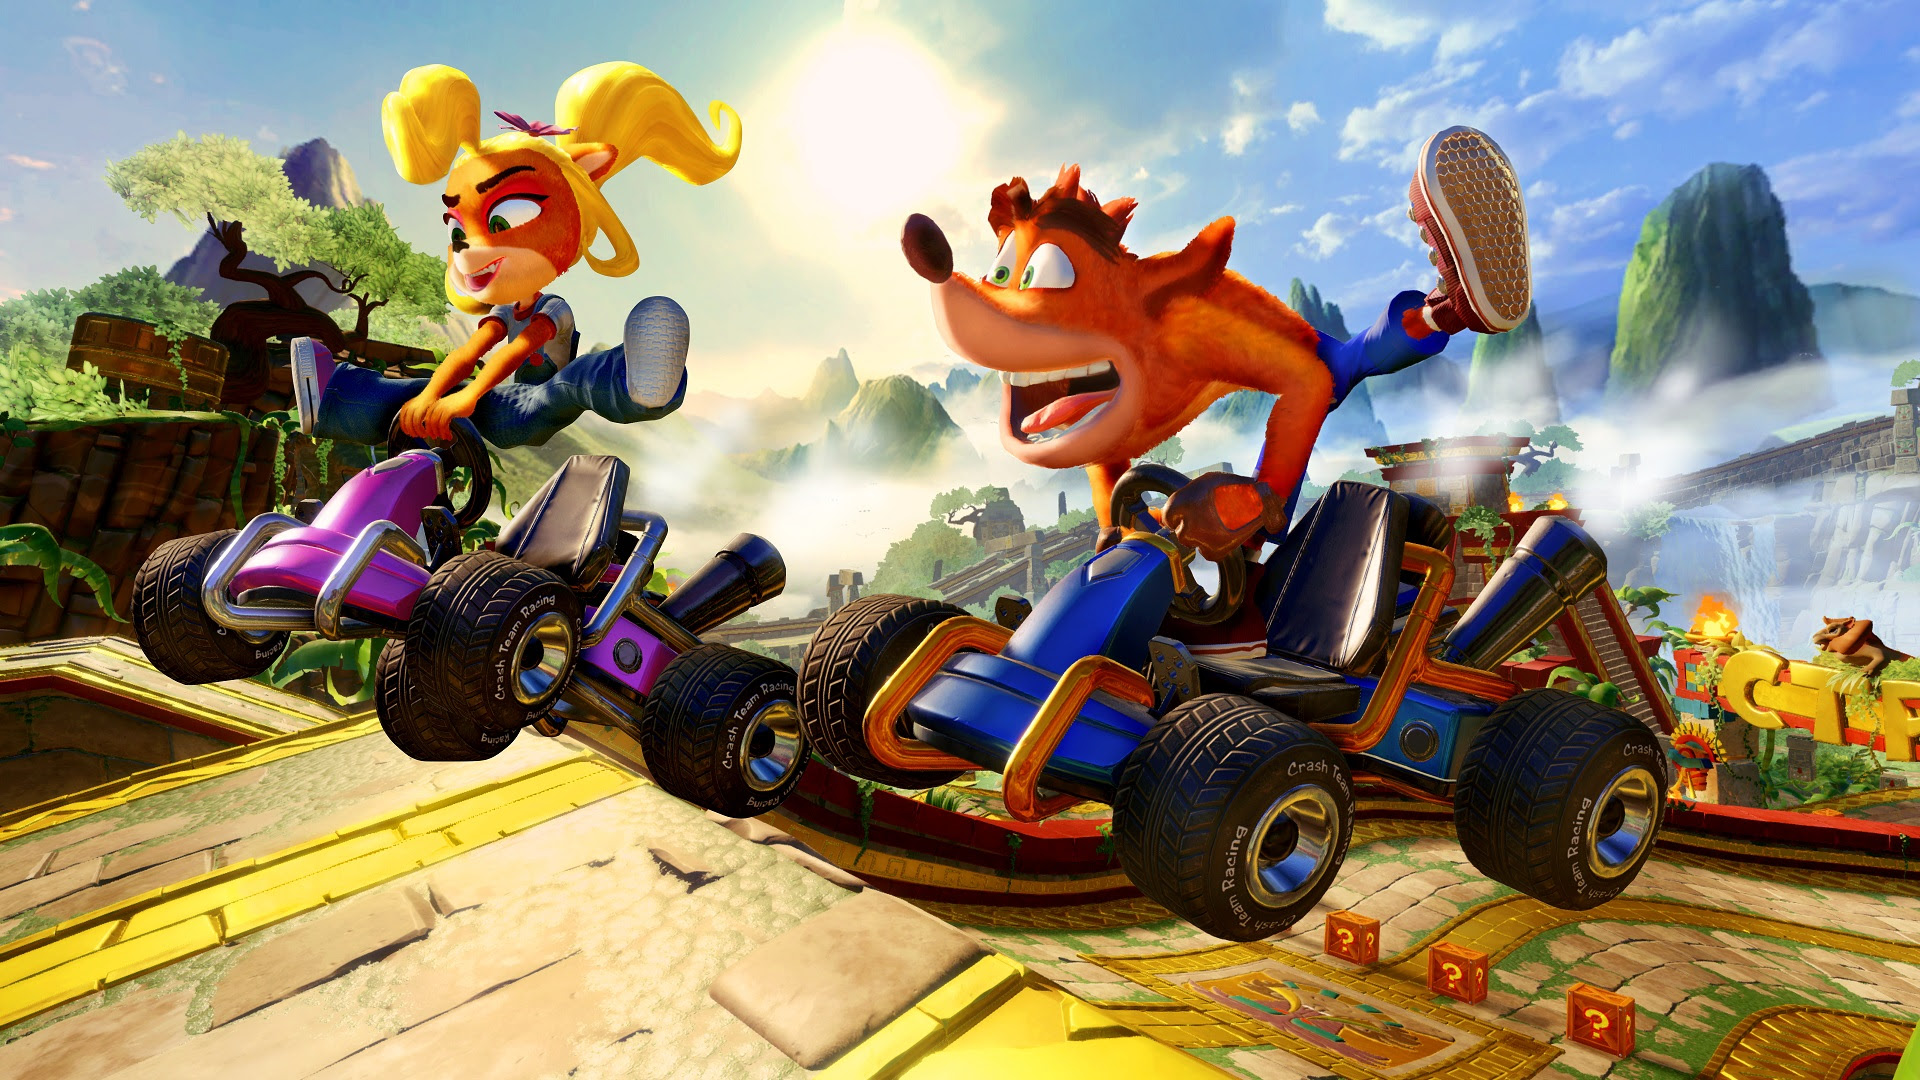 Crash Team Racing : Nitro-Fueled | é lançado hoje com oportunidade de customizar karts e personagens!